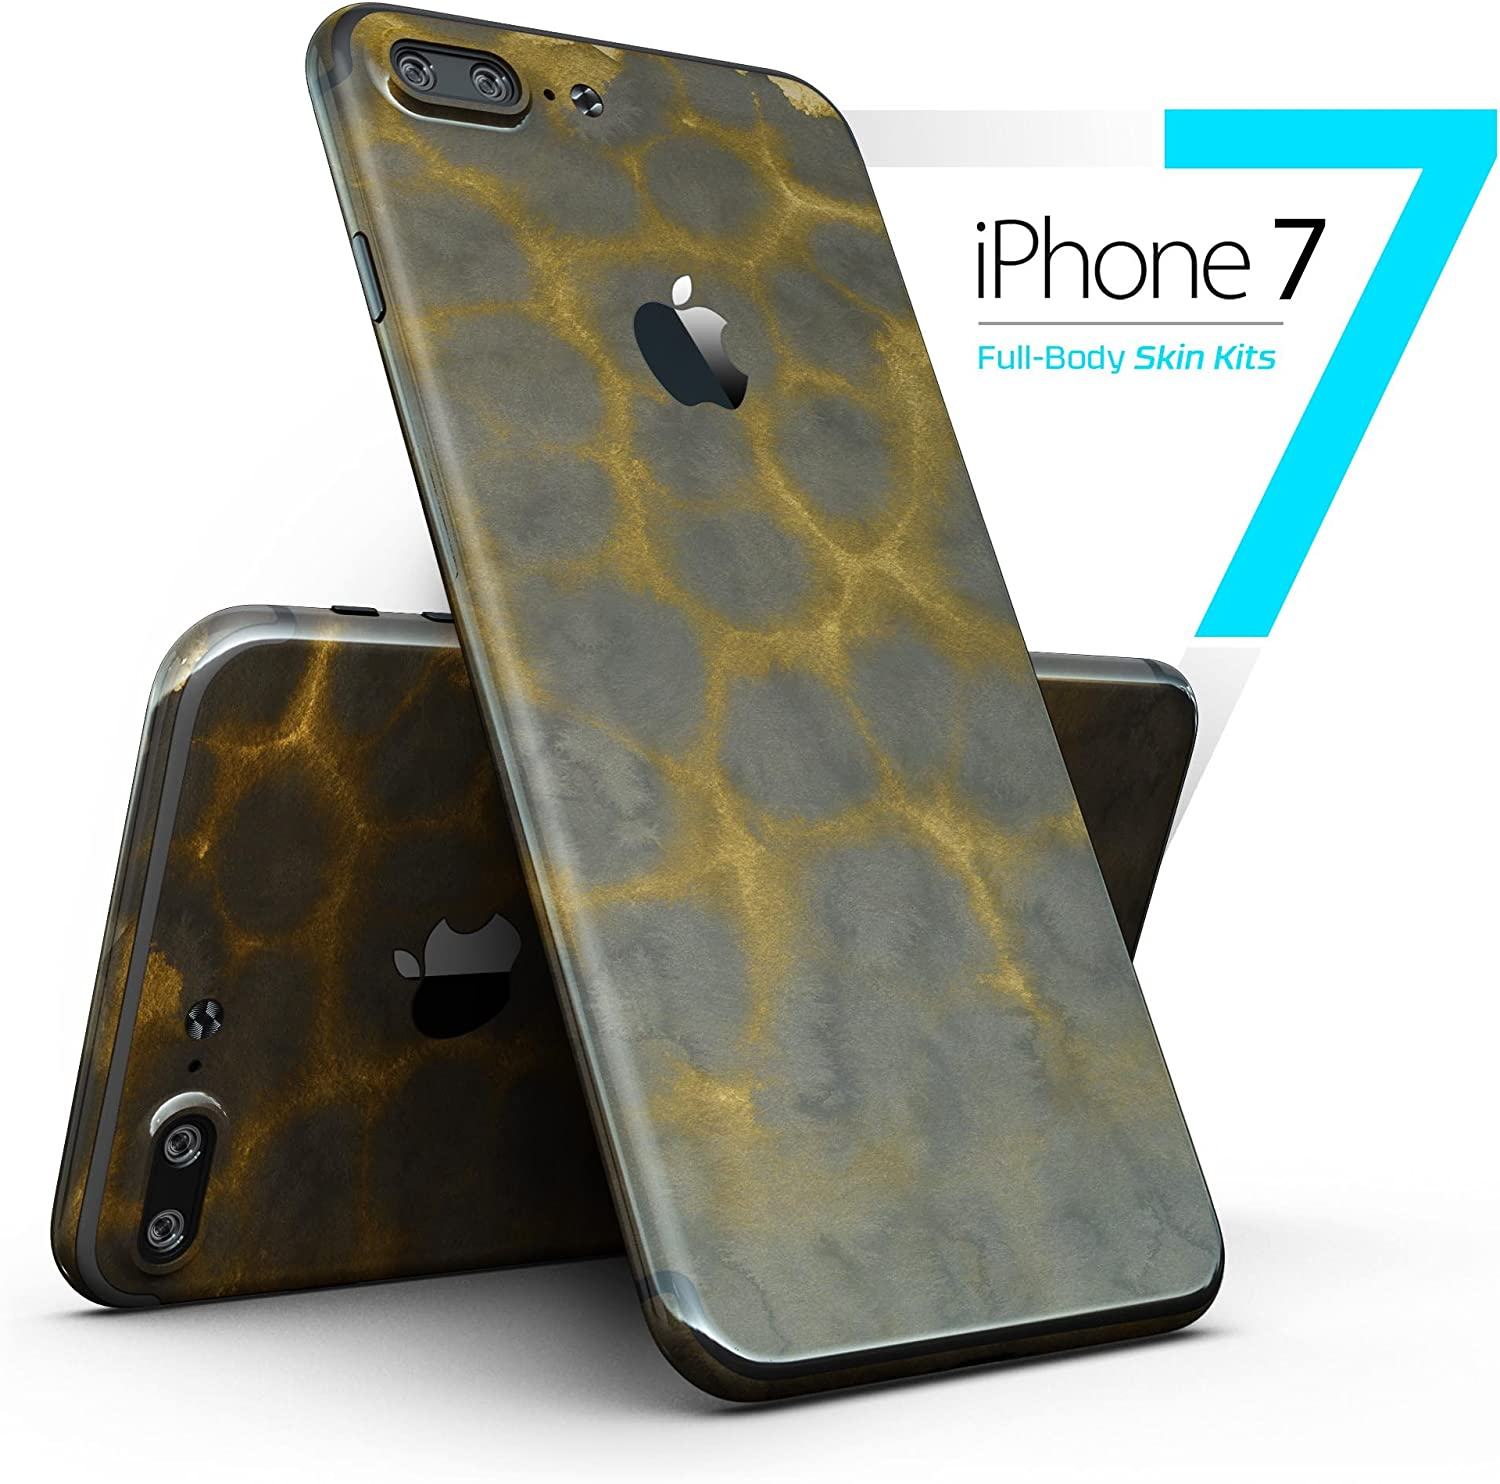 Dark Gray and Golden Honeycomb - Full-Body iPhone 7 Plus DesignSkinz // Slim / Ultra-Thin / Matte Finished / Protective Skin Wrap